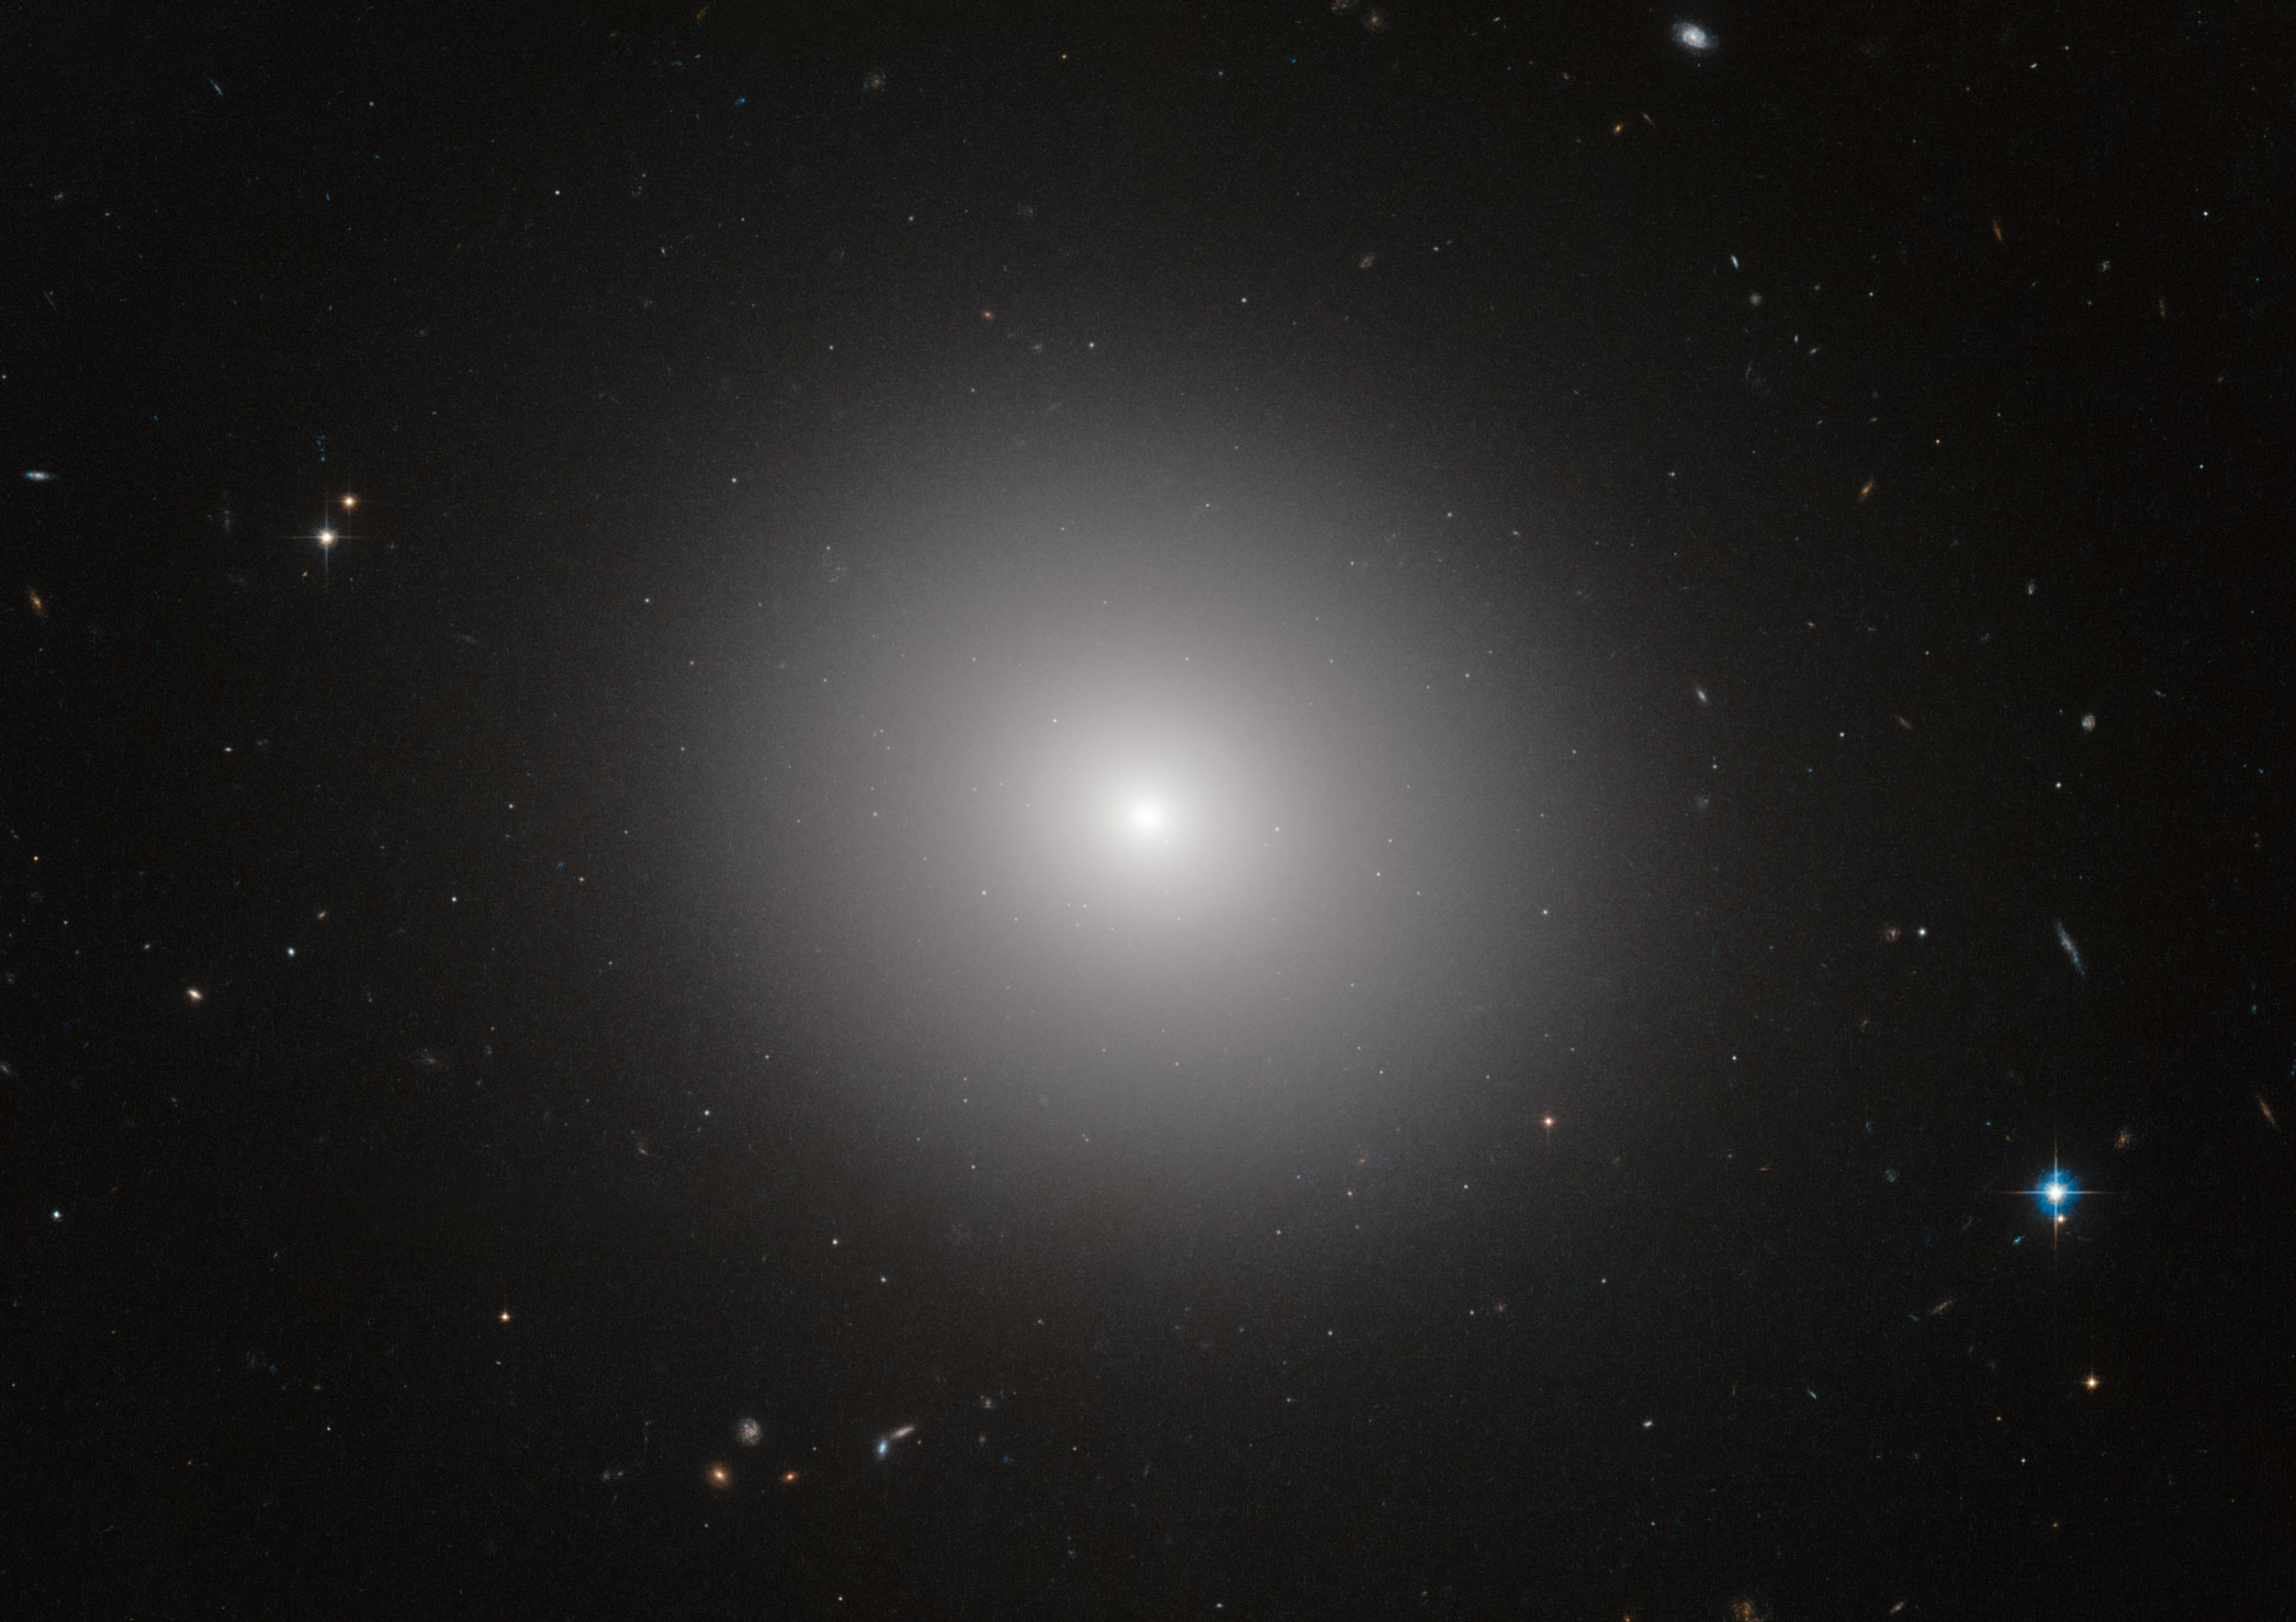 This NASA/ESA Hubble Space Telescope image shows an elliptical galaxy known as IC 2006. Massive elliptical galaxies like these are common in the modern Universe, but how they quenched their once furious rates of star formation is an astrophysical mystery.  The quenching of star formation seems to have started in the cores of the galaxies and then spread to the outer parts. Image credit: ESA/Hubble & NASA